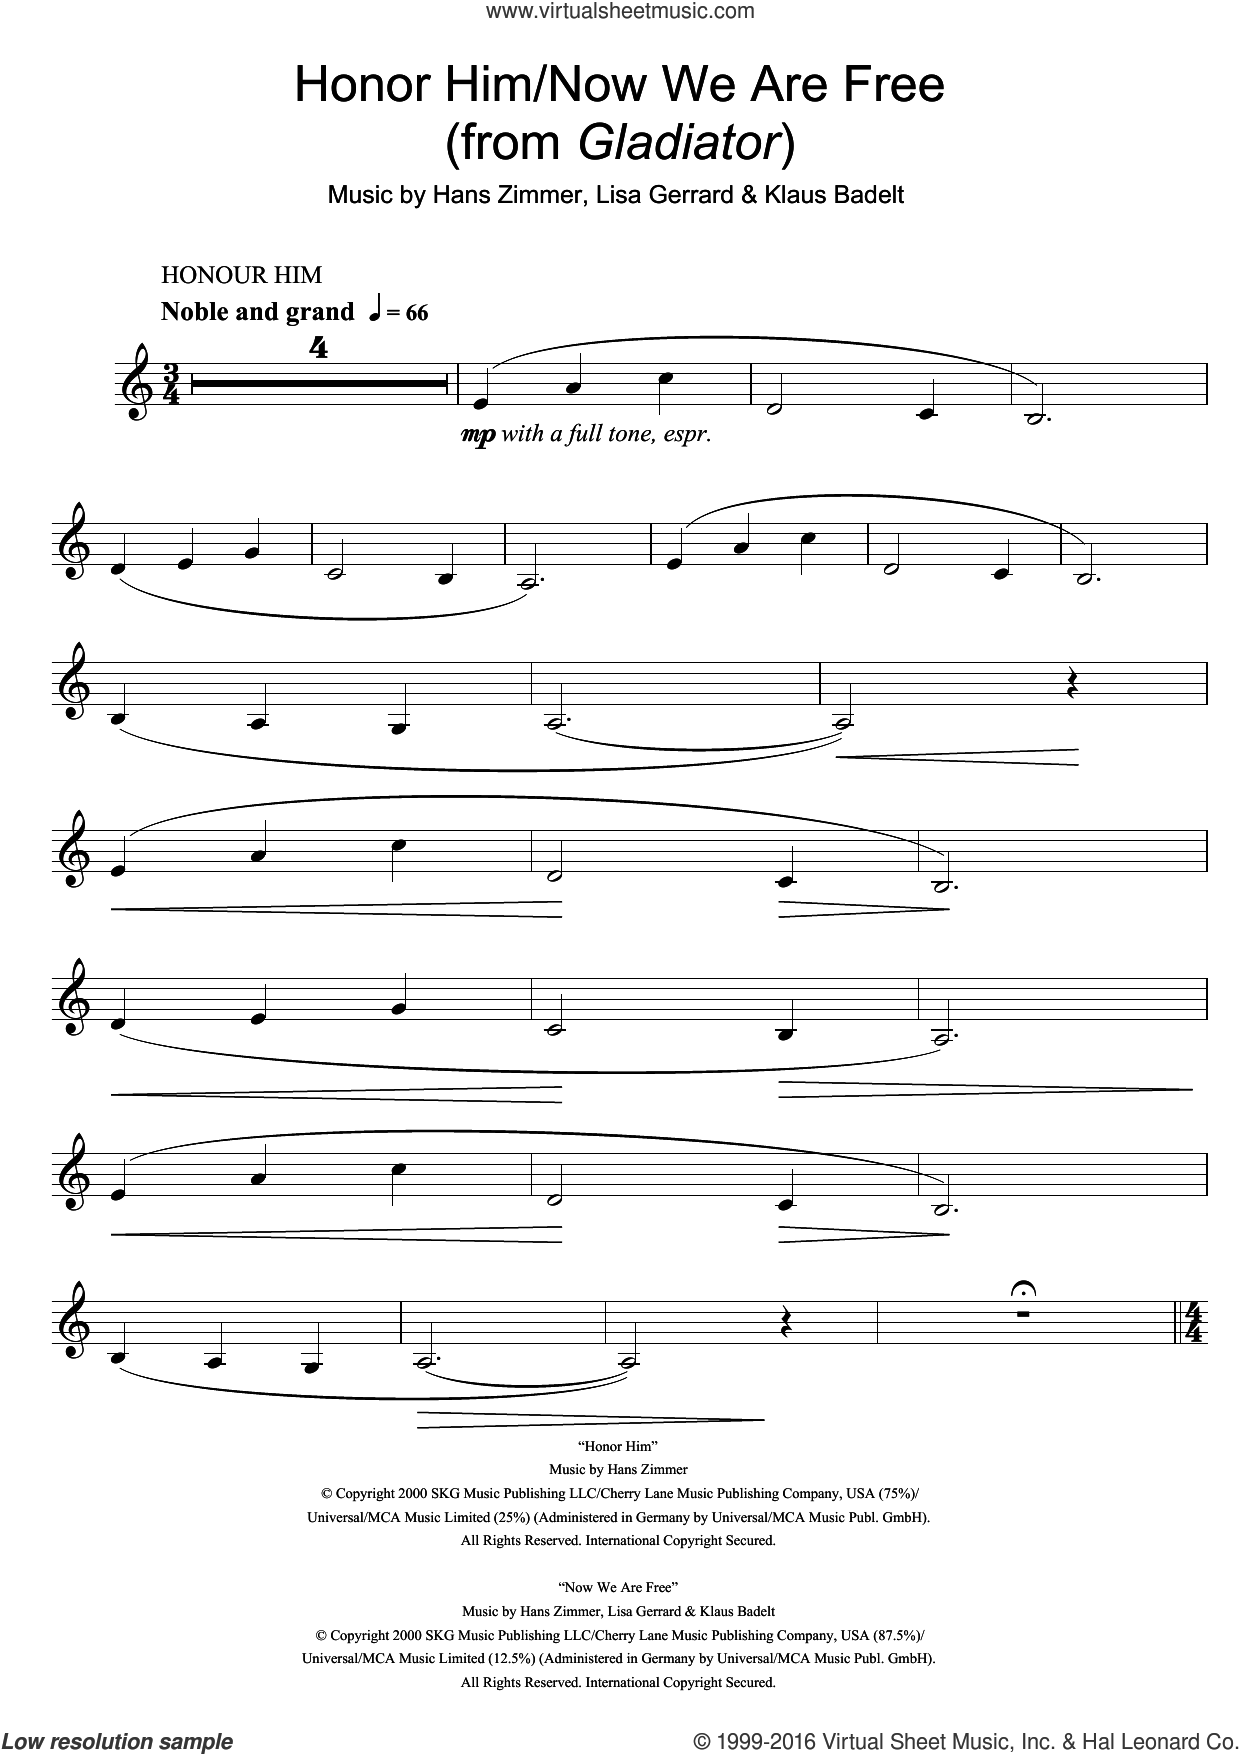 Honor Him/Now We Are Free (from Gladiator) sheet music for clarinet solo by Lisa Gerrard, Hans Zimmer and Klaus Badelt. Score Image Preview.